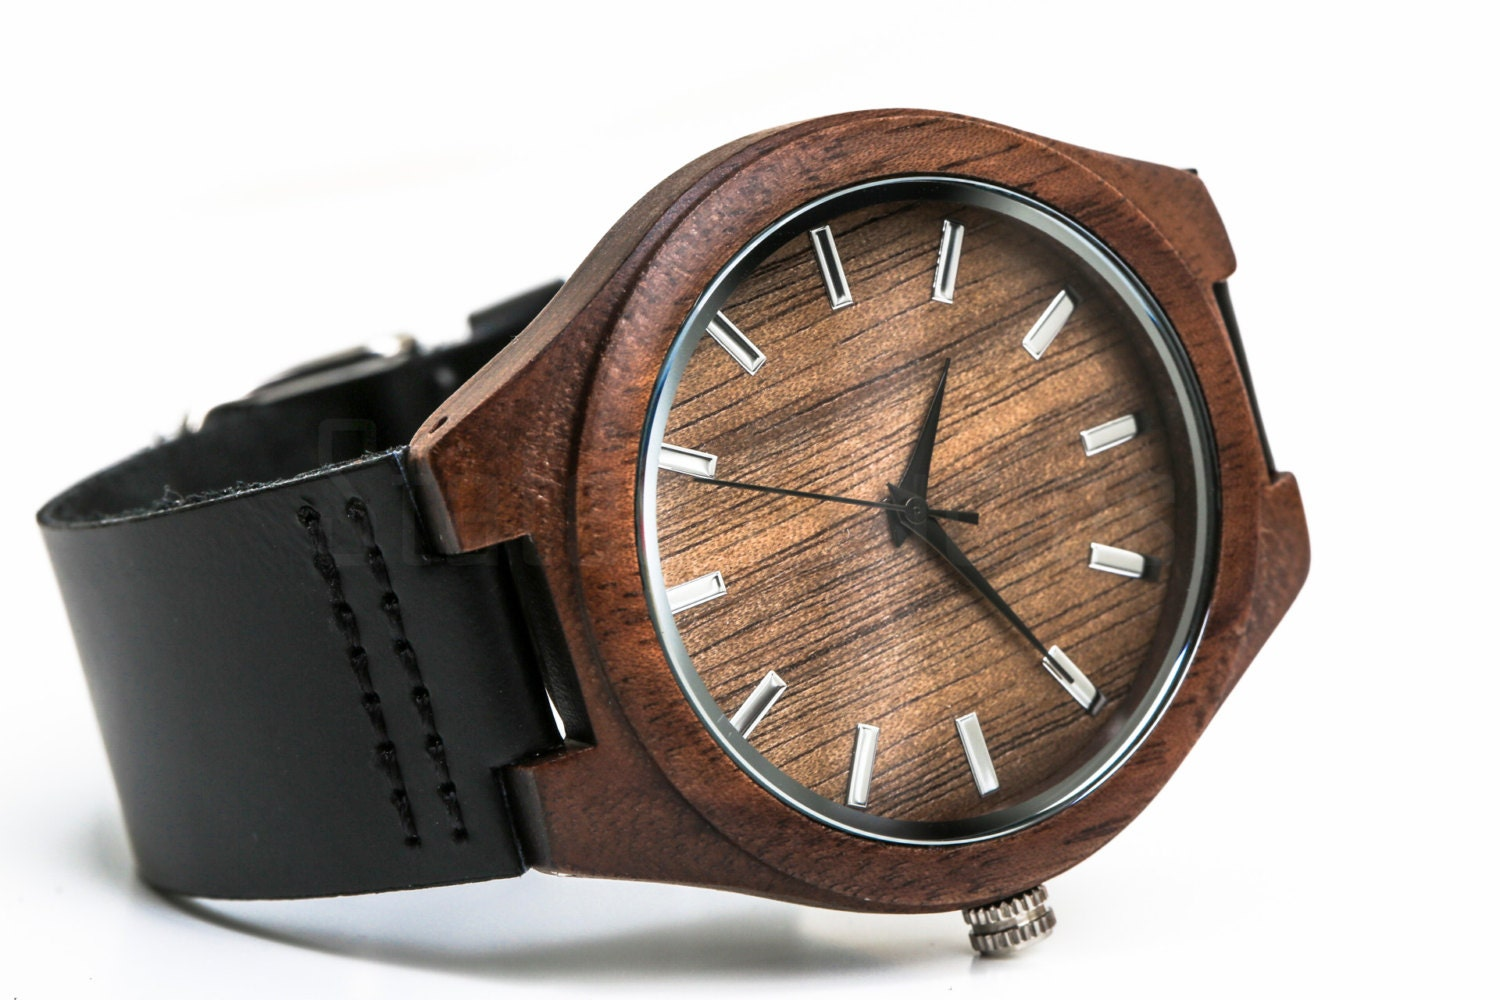 Custom engraved wooden watch watches for men persoanlized for Watches engraved